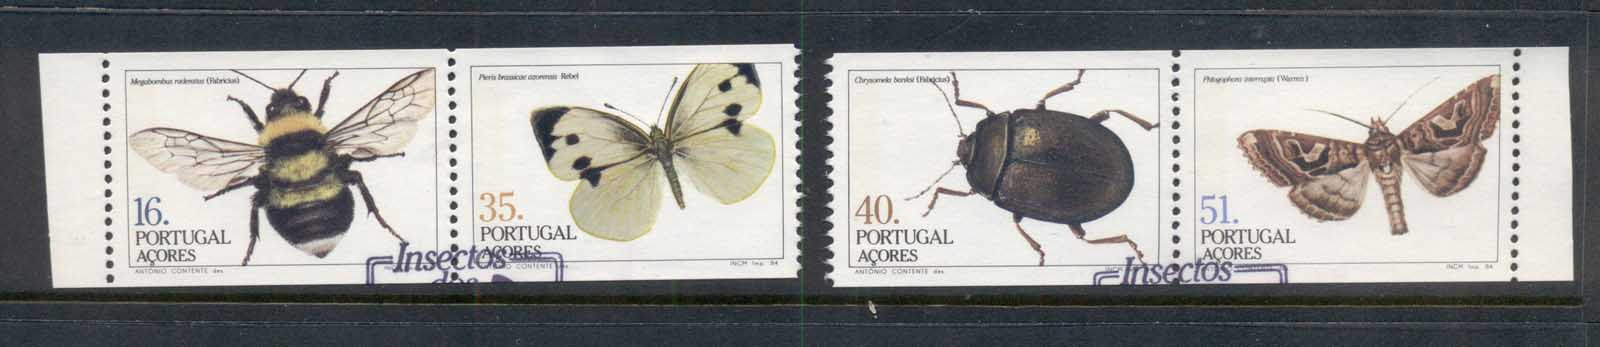 Azores 1984 Insects, beetles, Butterflies ex booklet pane FU